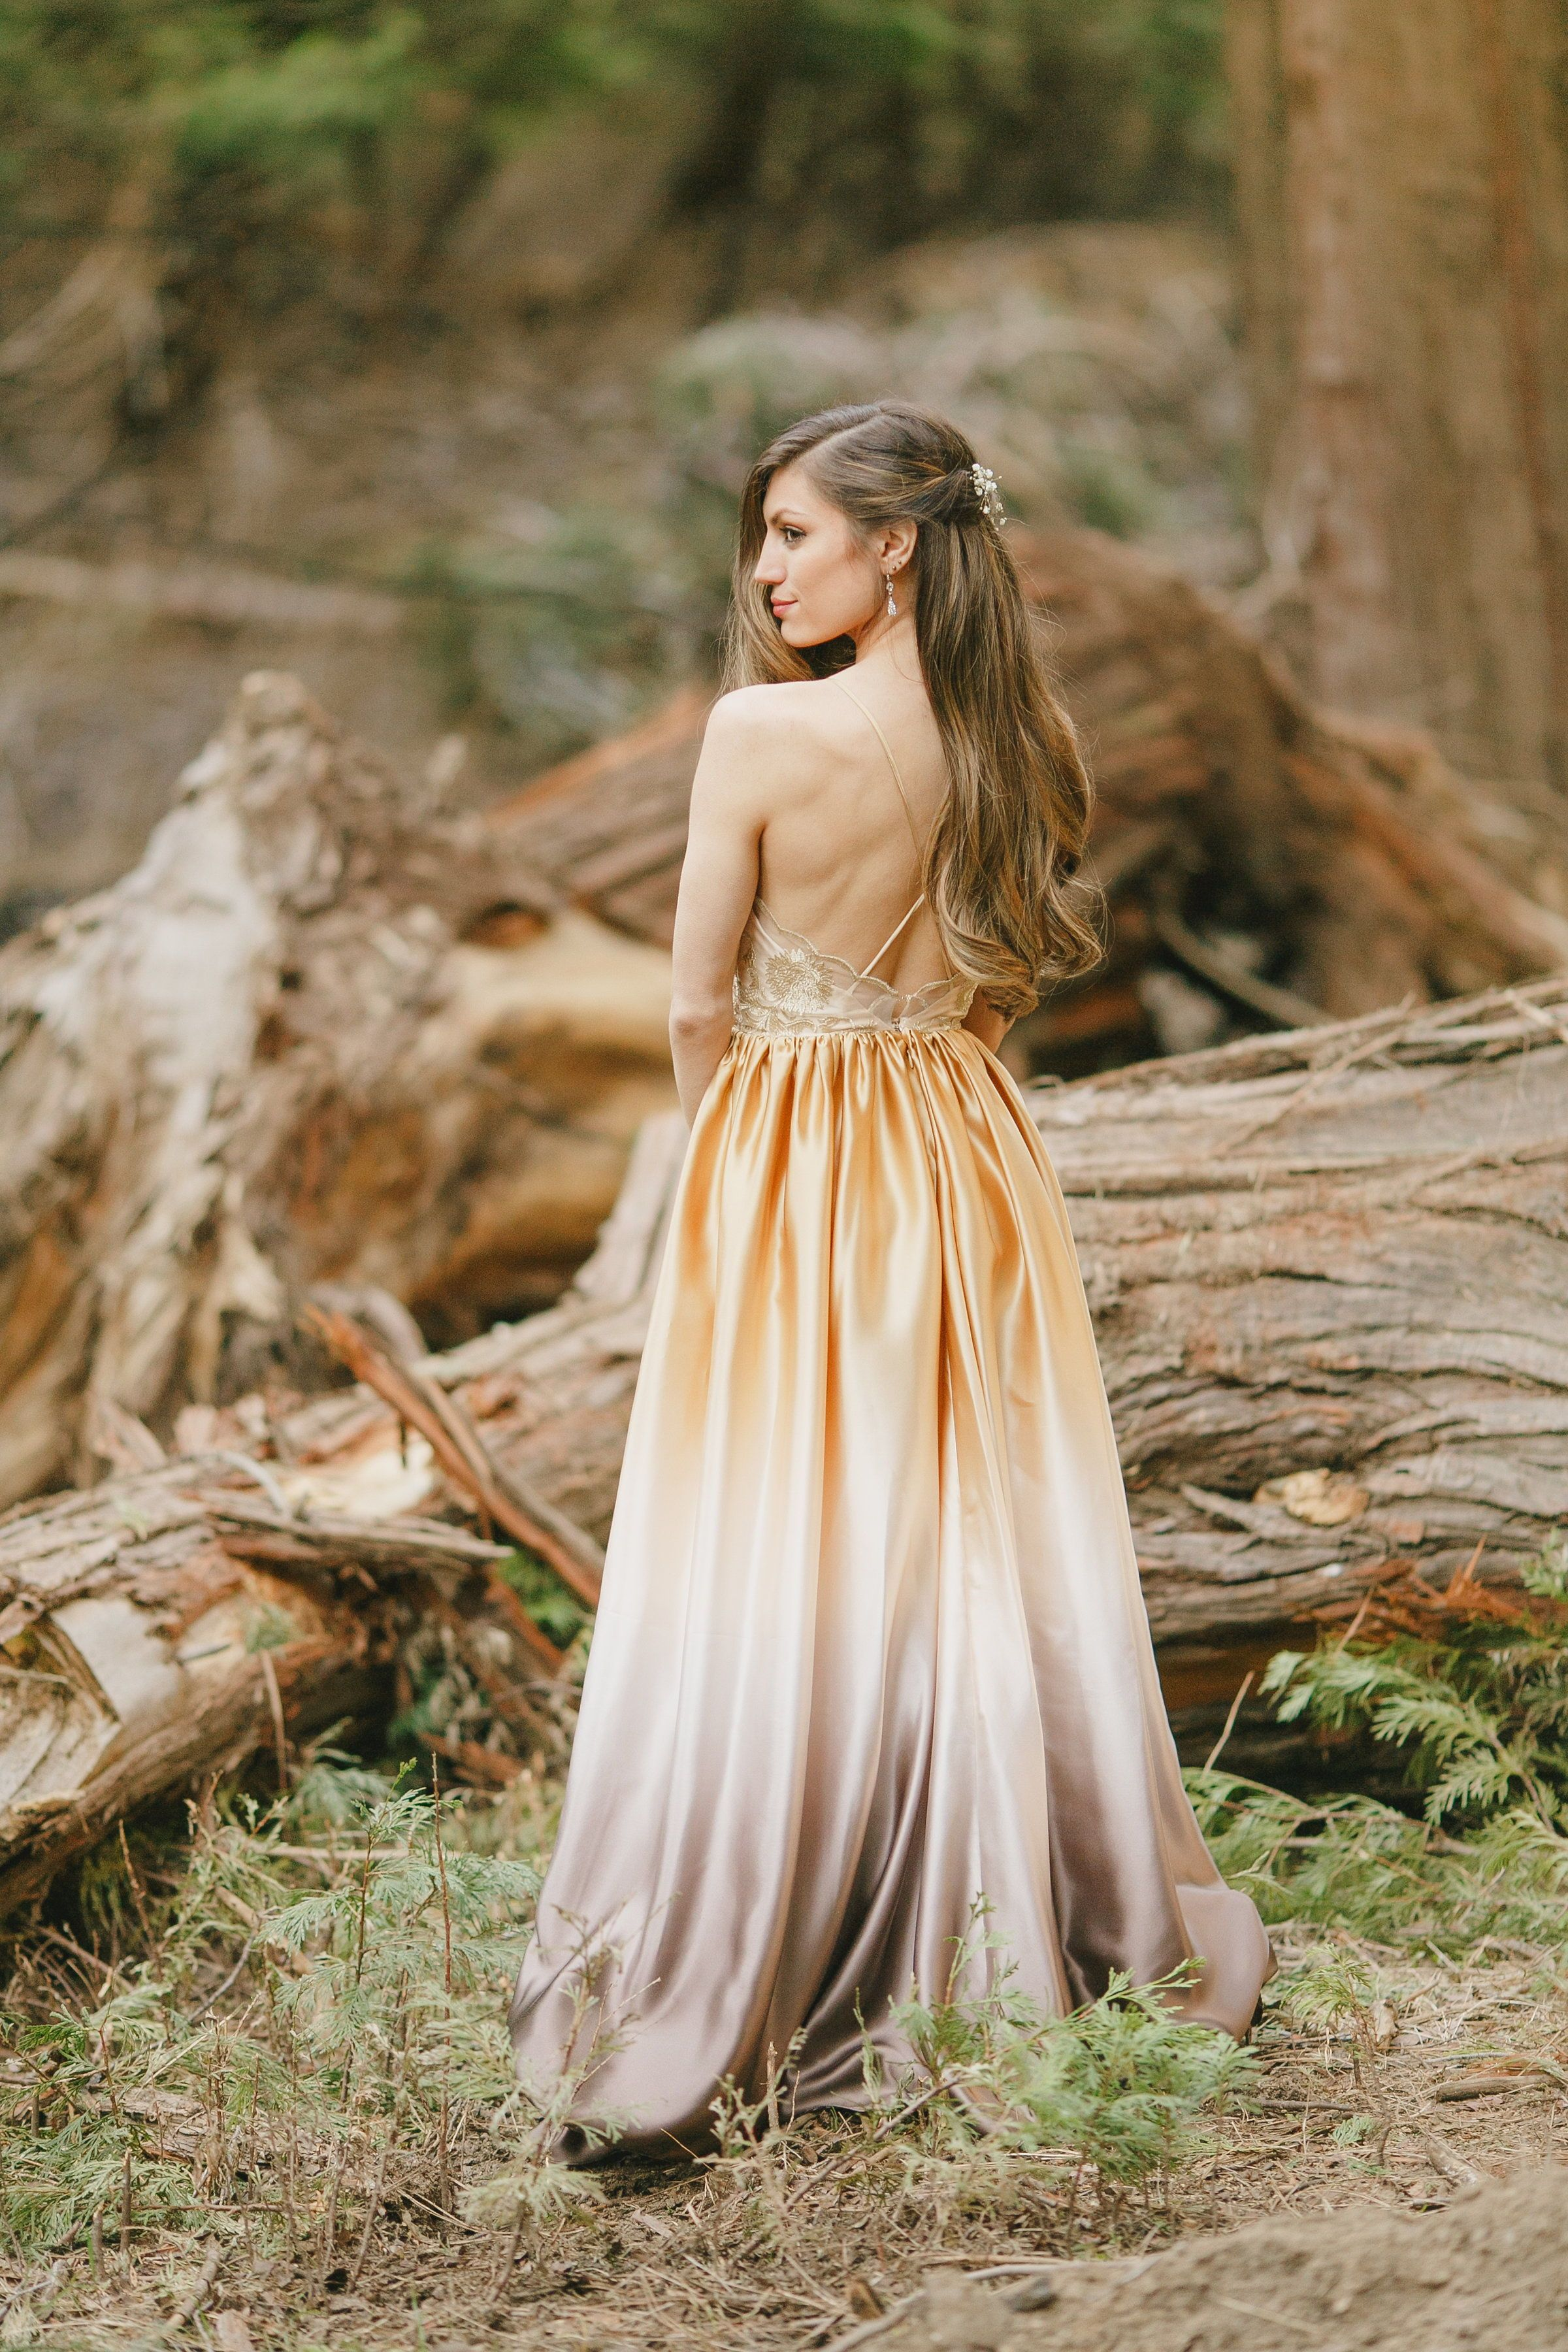 Unique Gold Ombre Gown Enchanting Satin Maxi Dress With Open Back Forest Engagement Photos Forest Engagement [ 3600 x 2400 Pixel ]